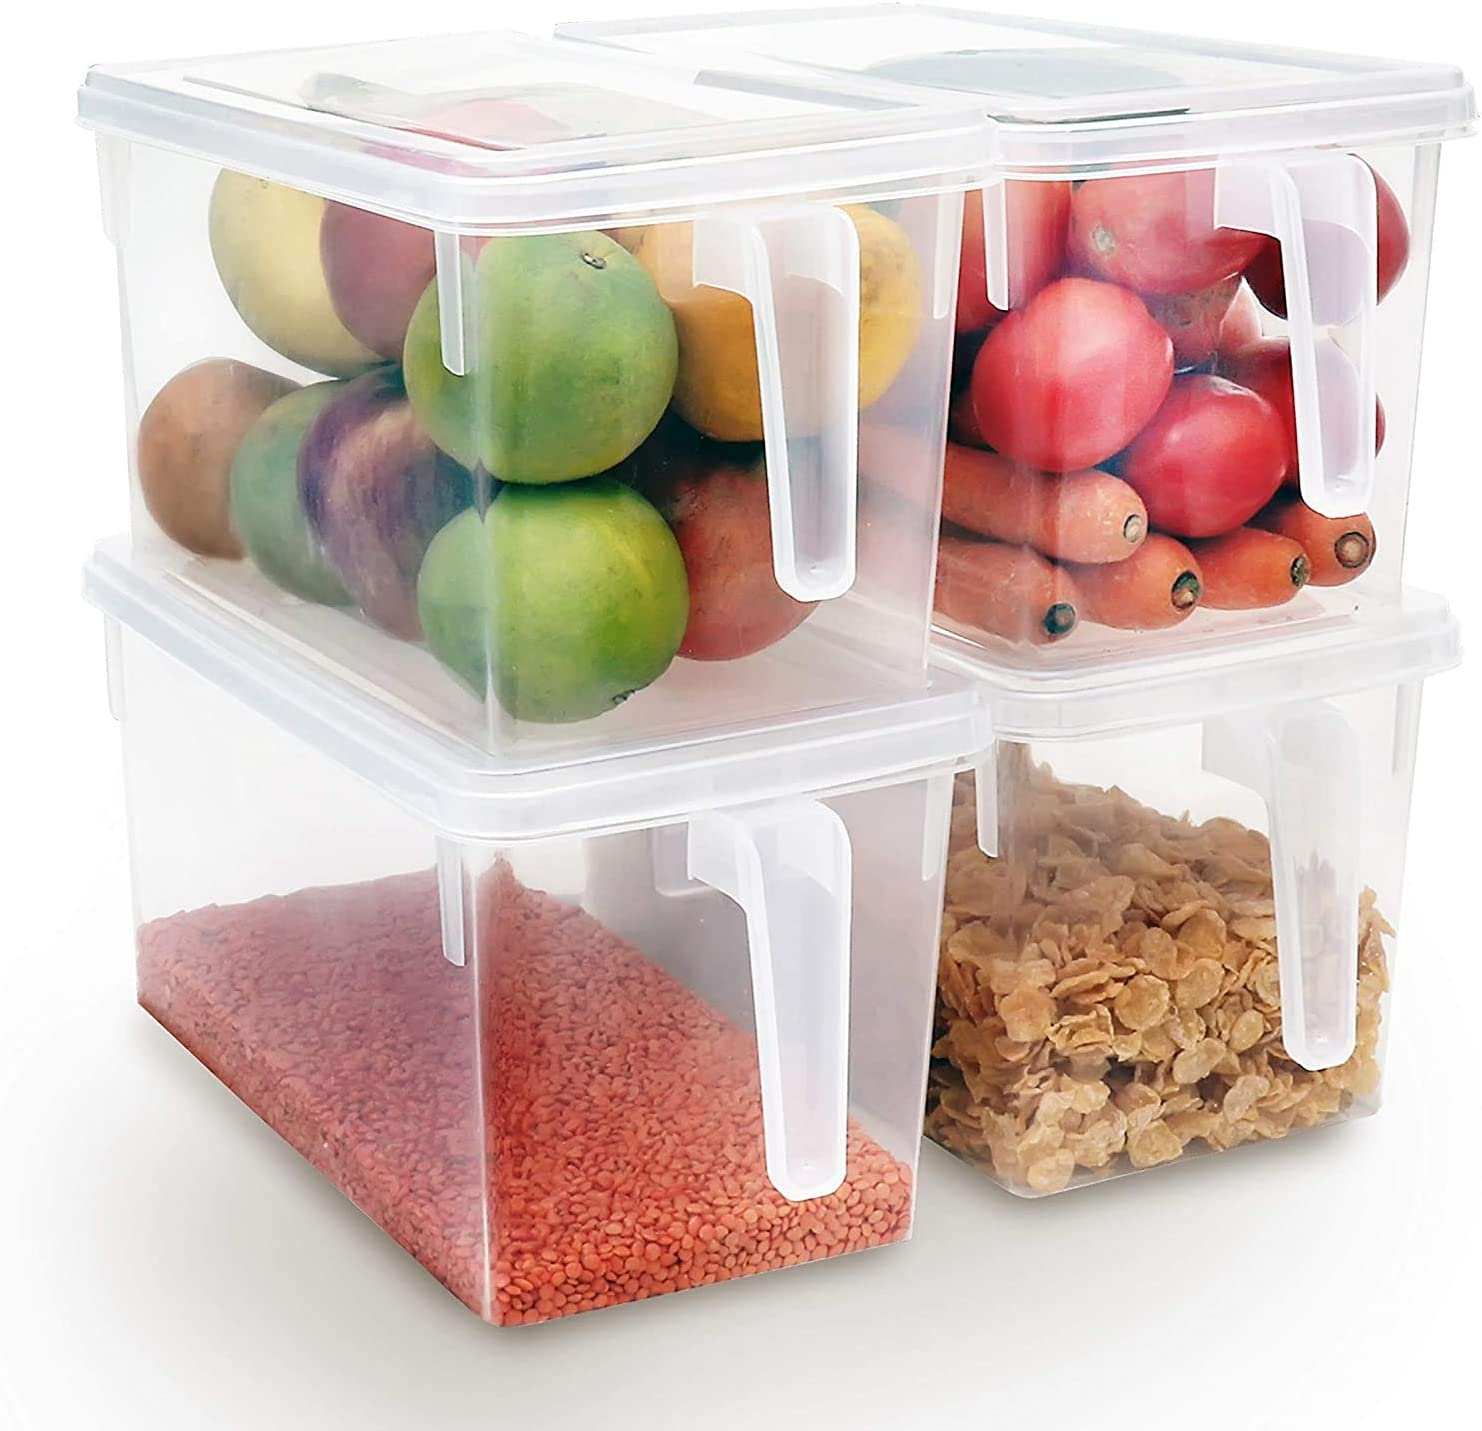 Kitchen Transparent PP Storage Box Grains Beans Storage Contain Sealed Home Organizer Food Container Refrigerator Storage Boxes (3 Pack)